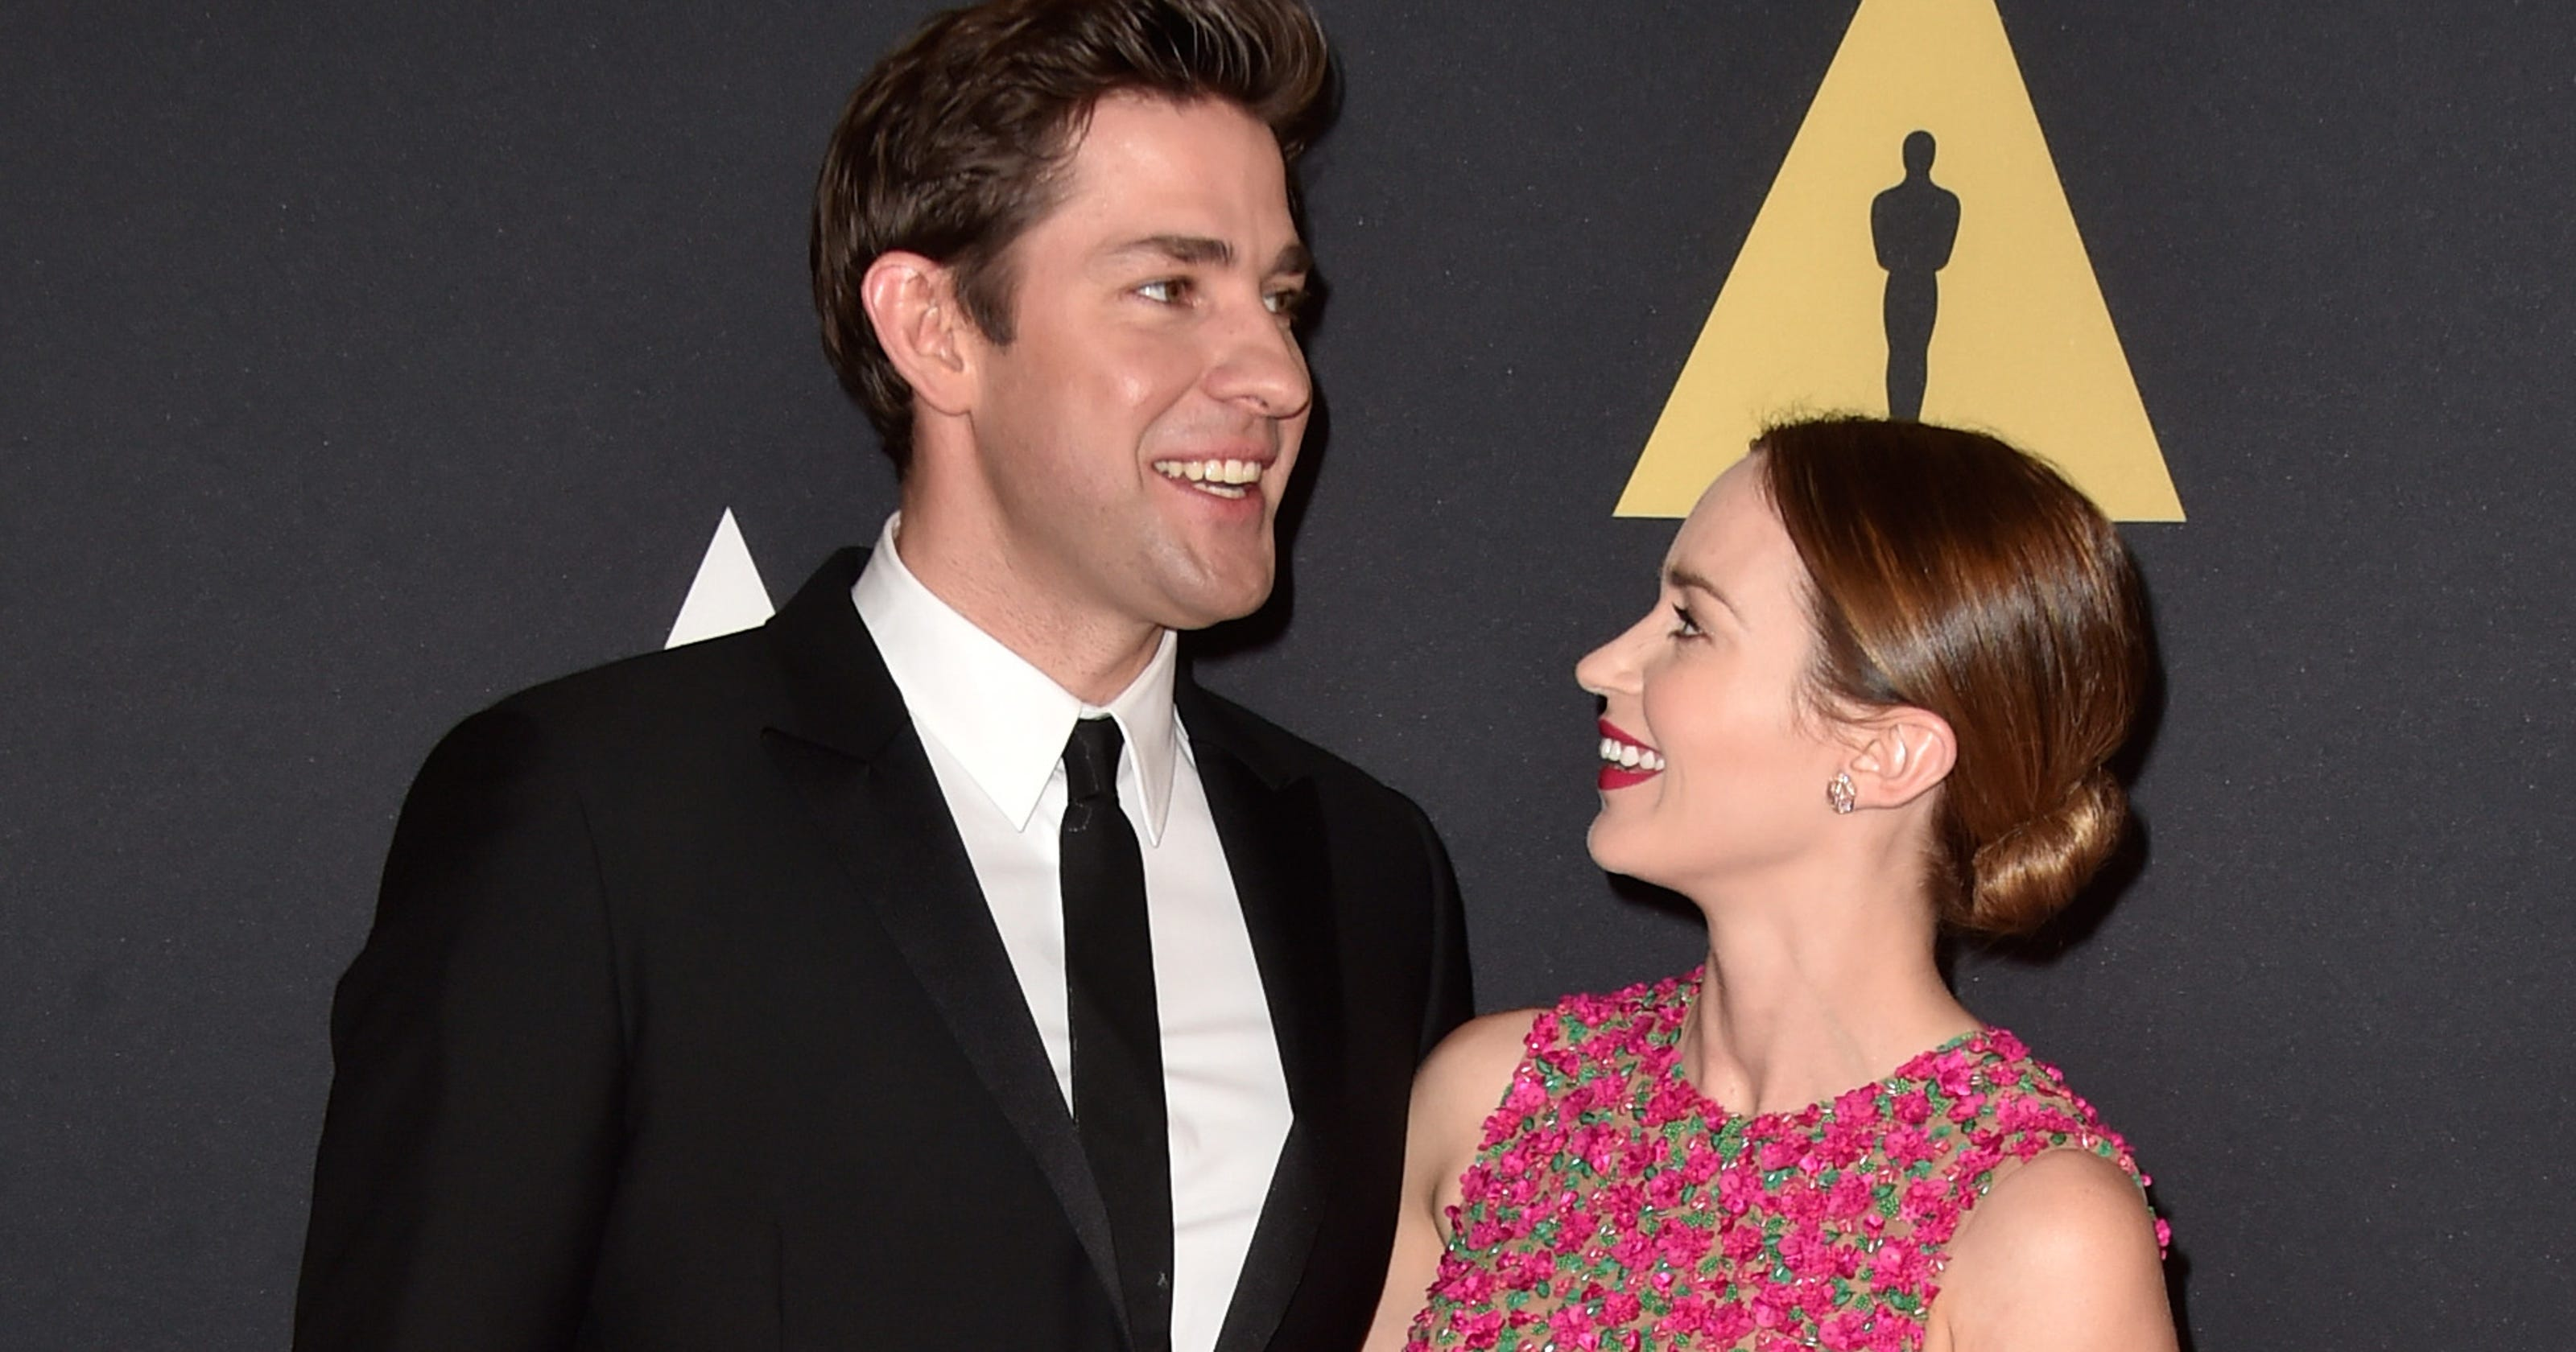 Here's Why John Krasinski And Emily Blunt Are The Baddest